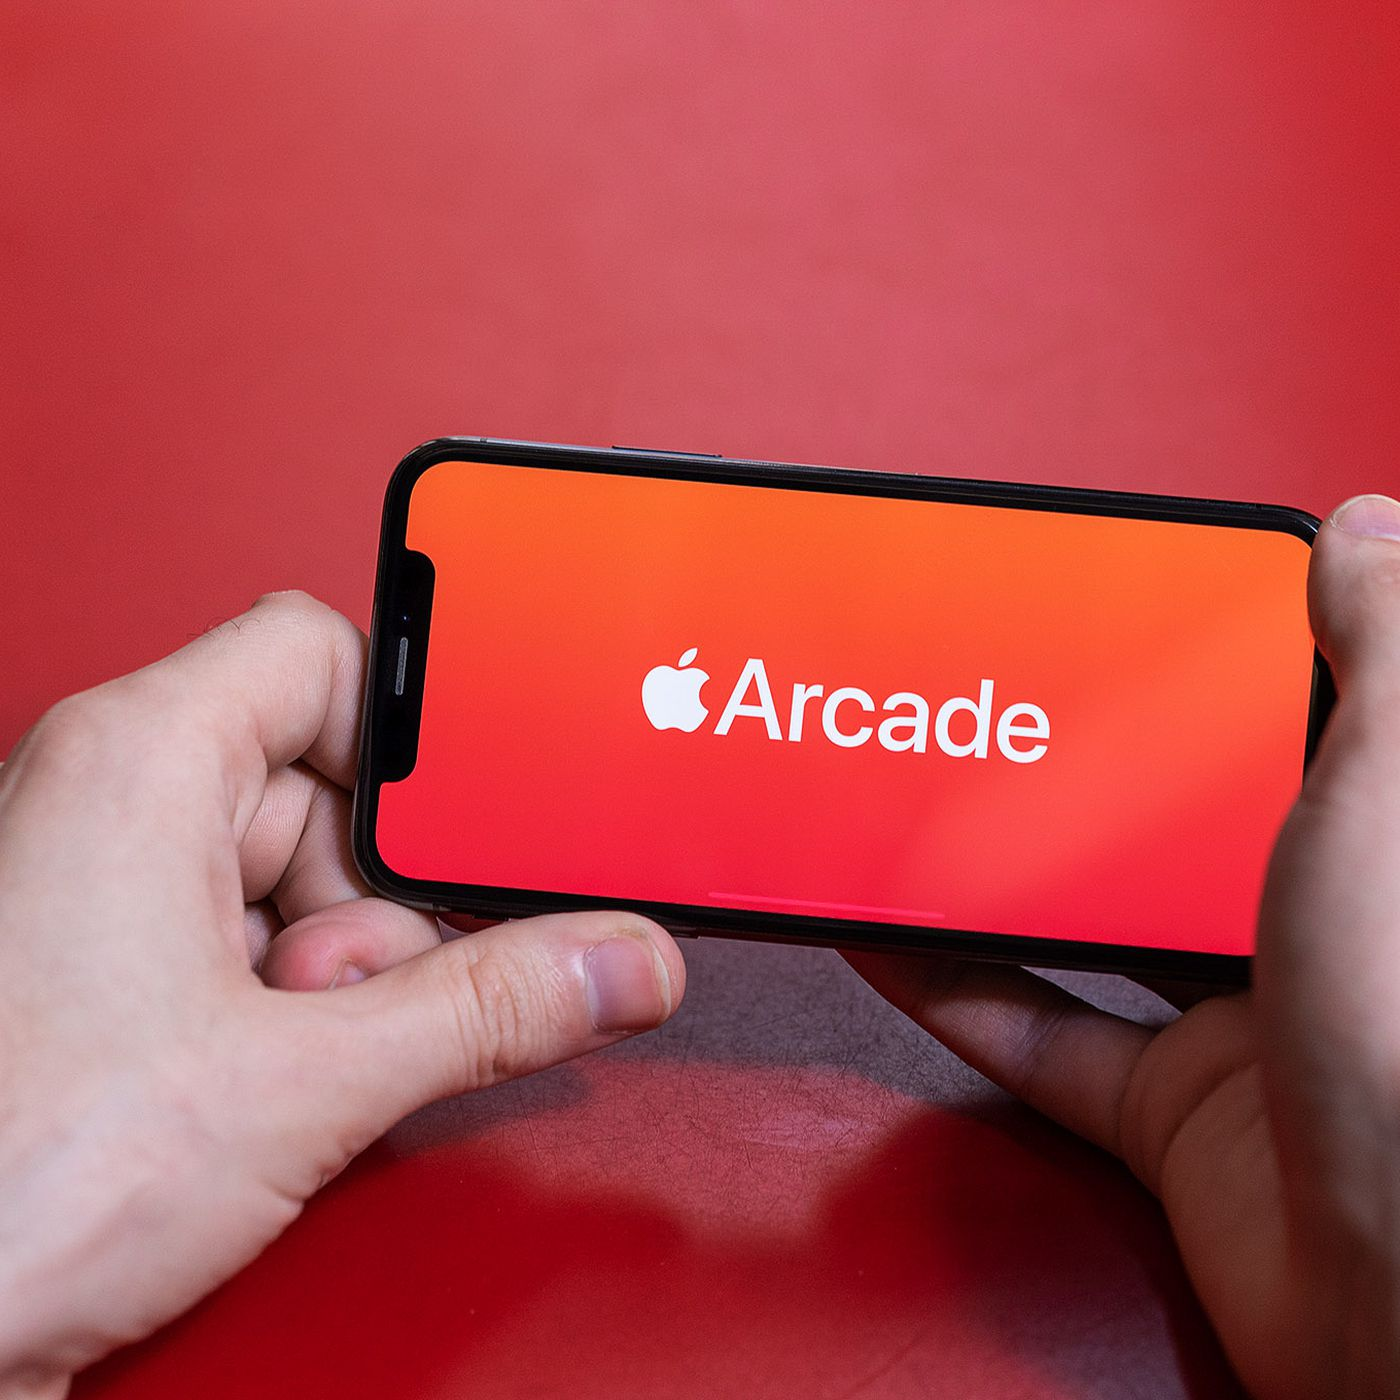 Apple Arcade Is A Home For Premium Games That Lost Their Place On Mobile The Verge